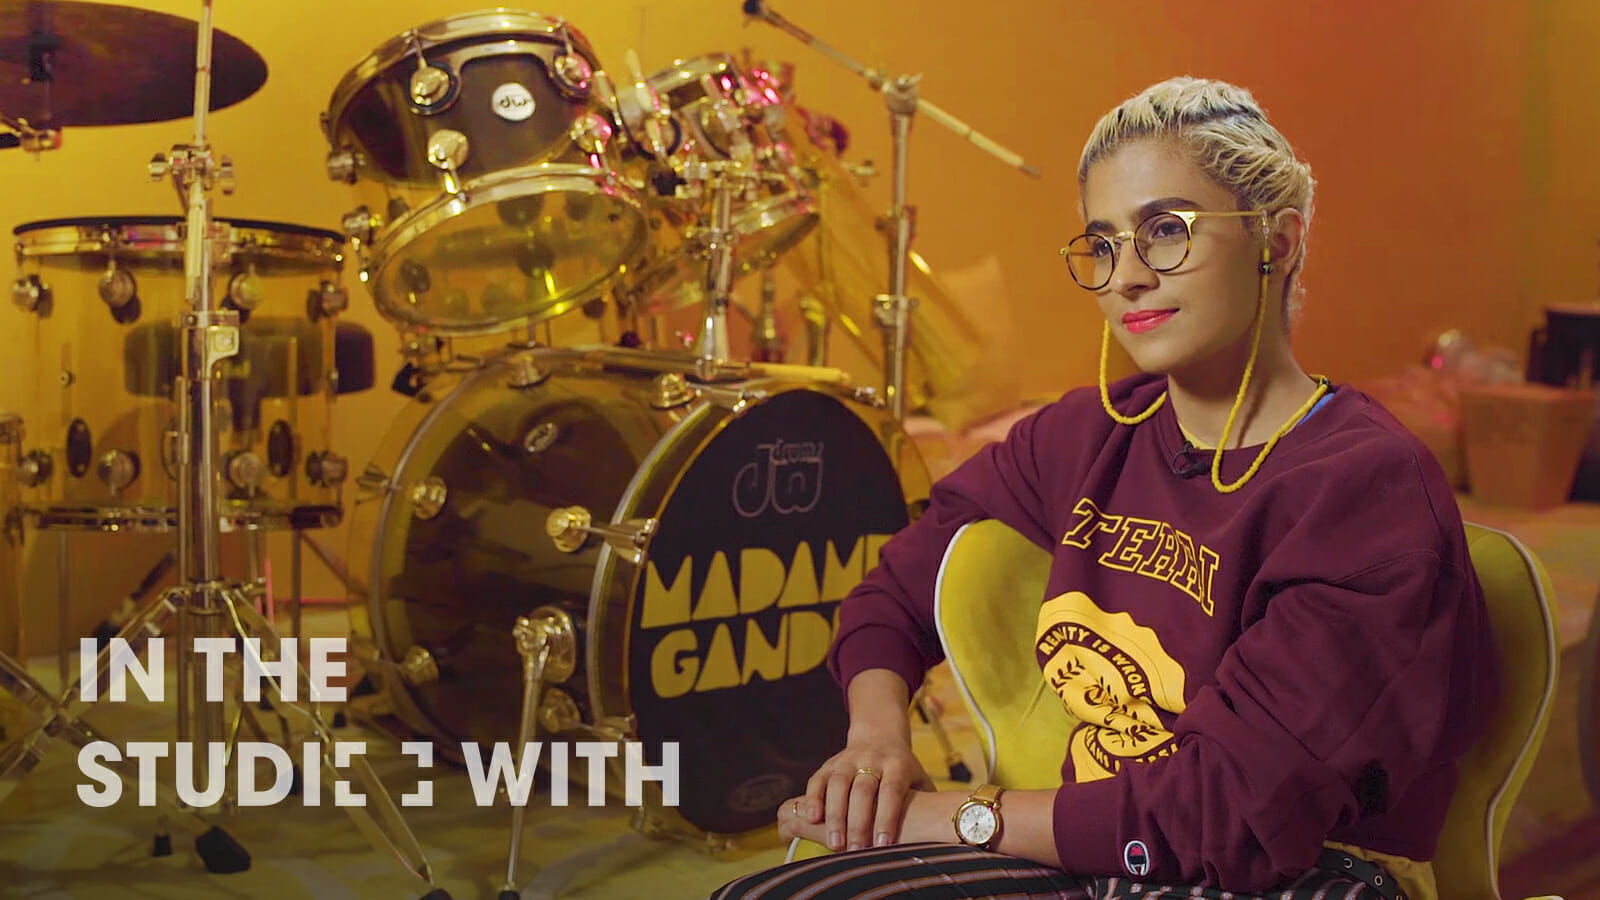 Percussionist Madame Ghandi in the studio with her drum kit